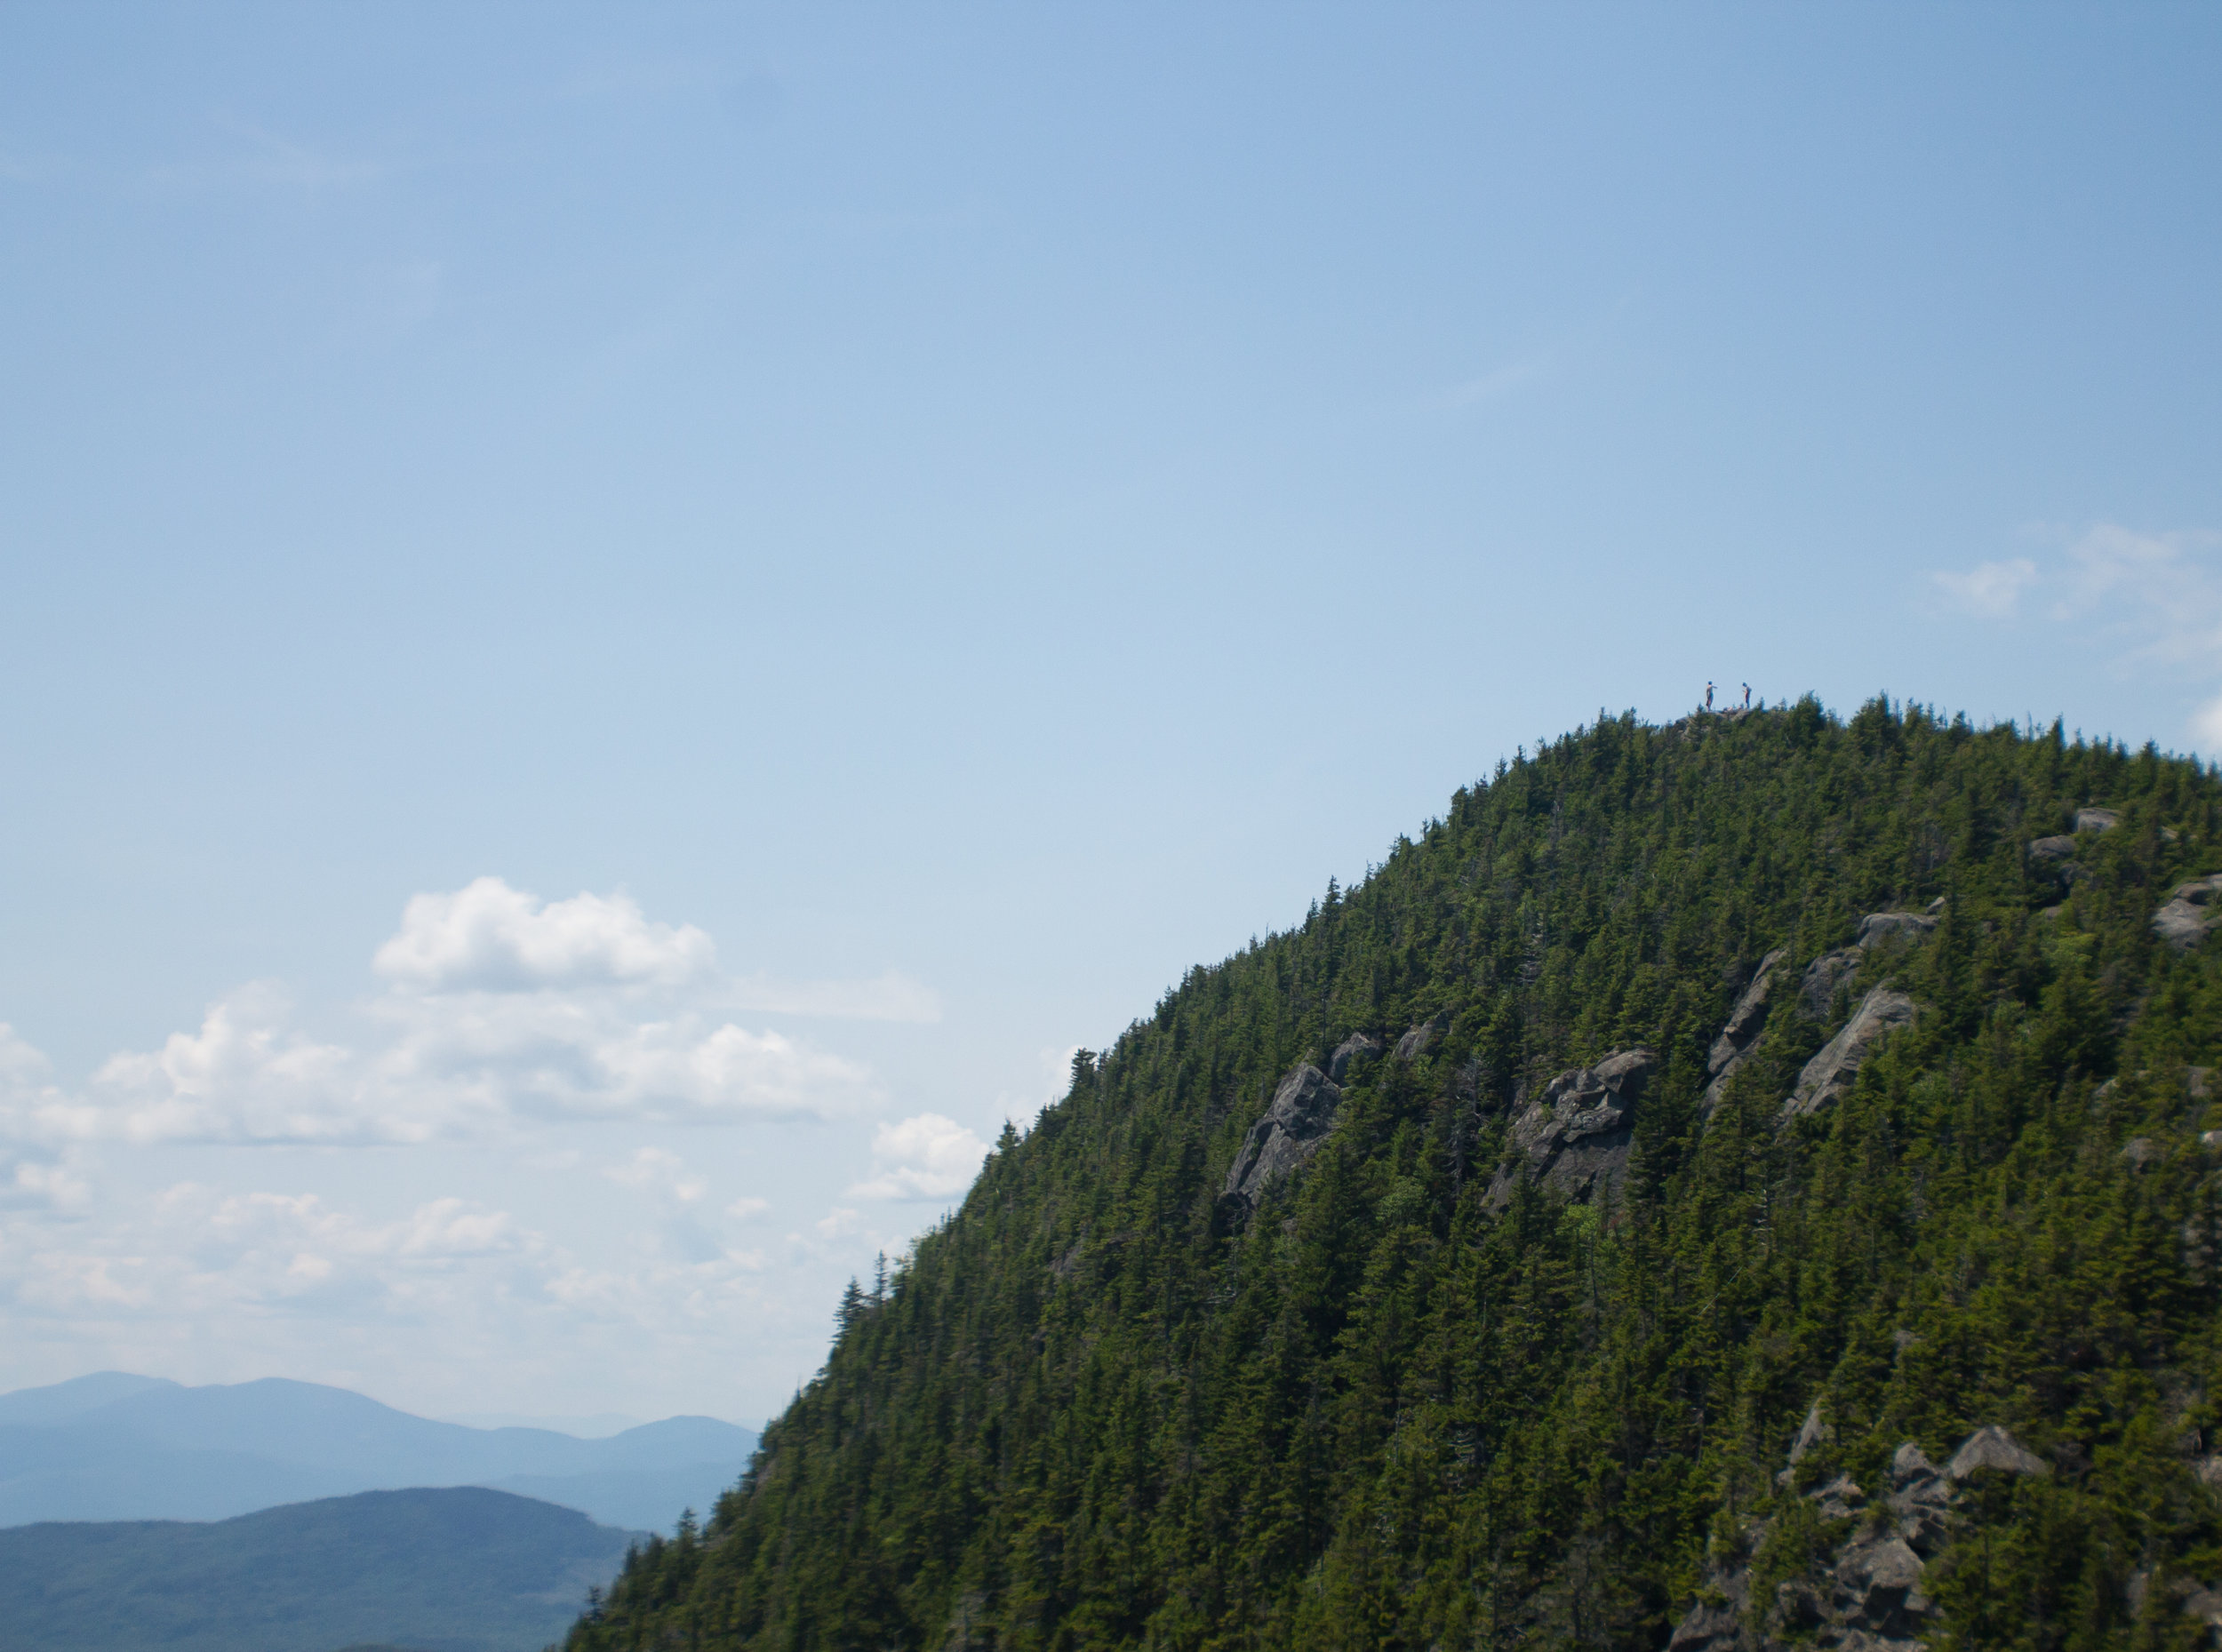 Land of Blue Mountains - Tumbledown, Maine